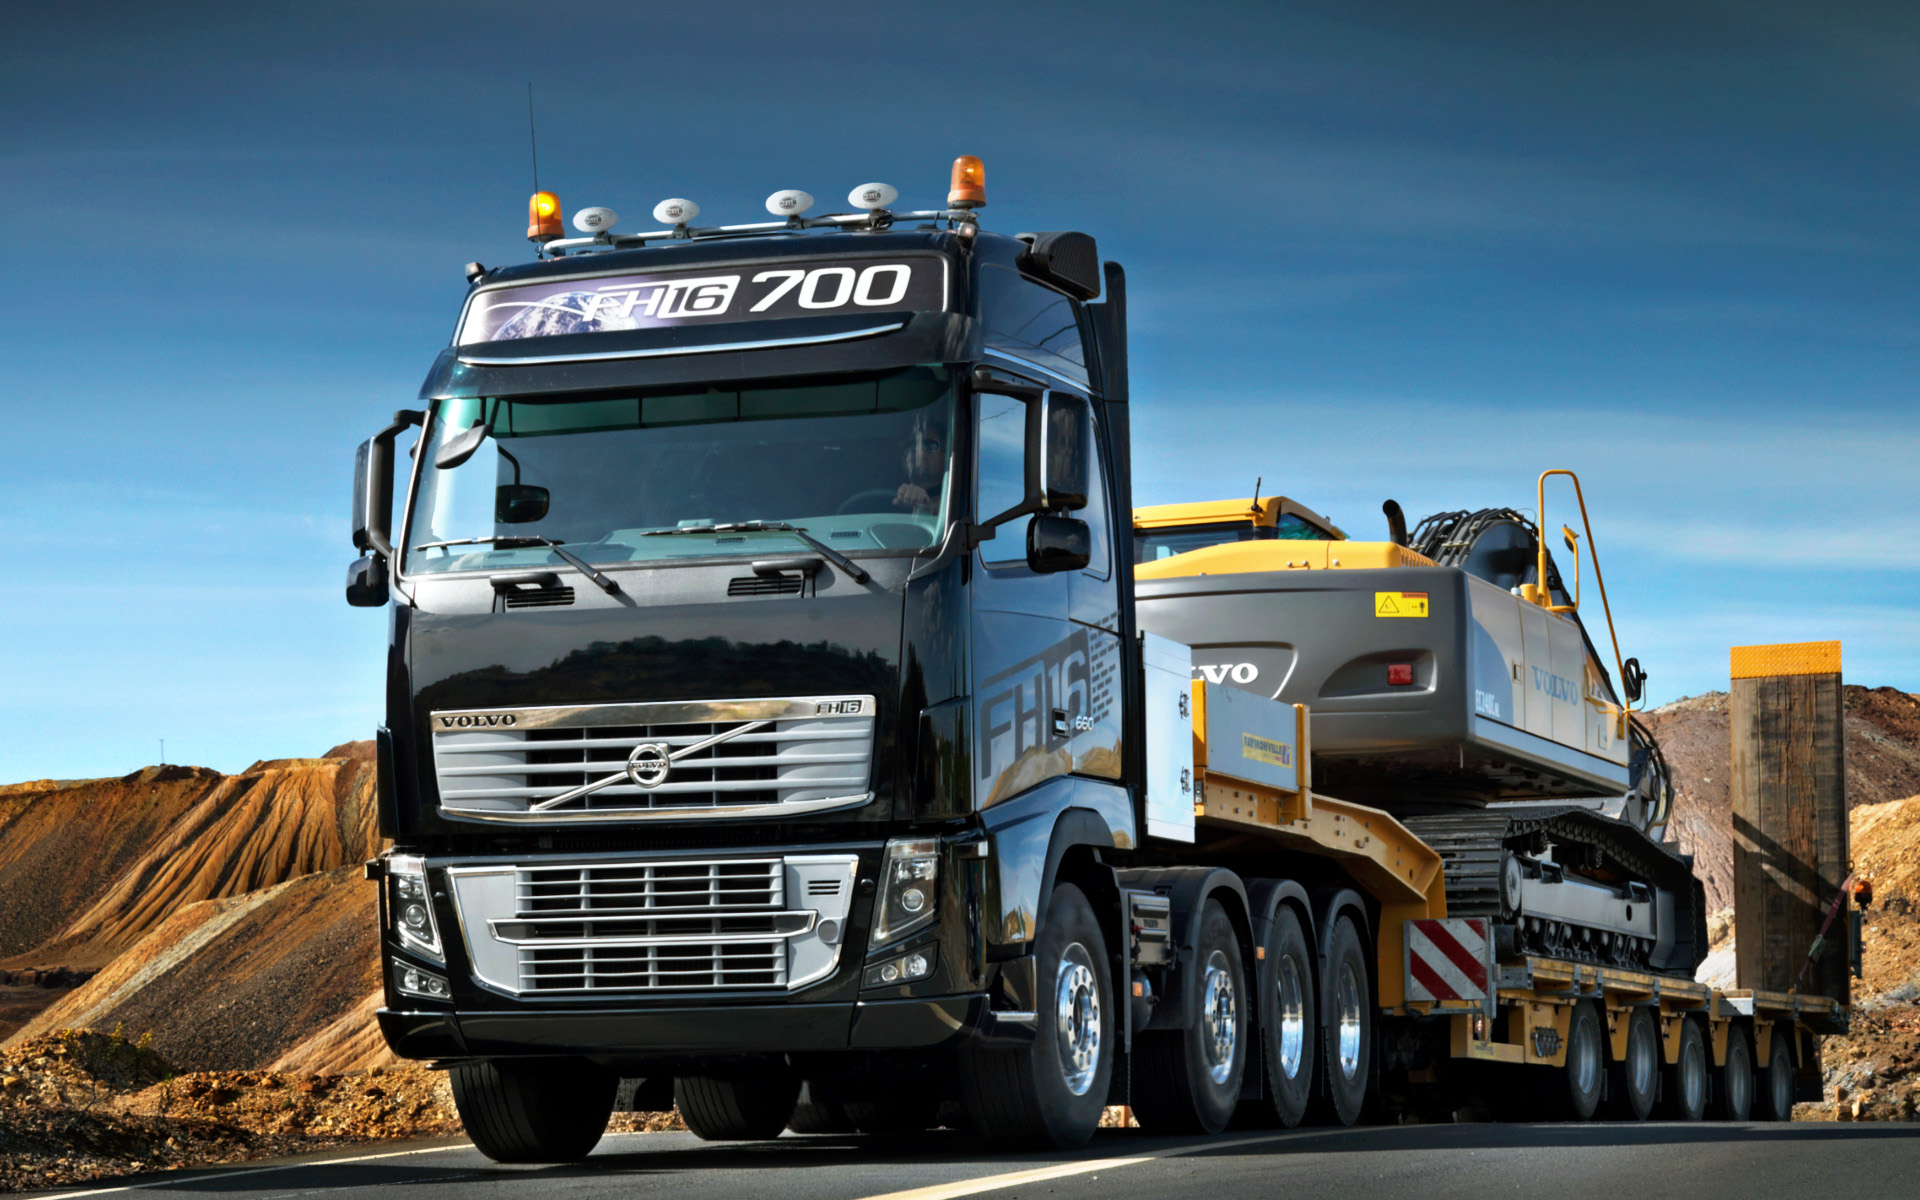 Commercial vehicles volvo truck backgrounds Car Wallpapers 1920x1200